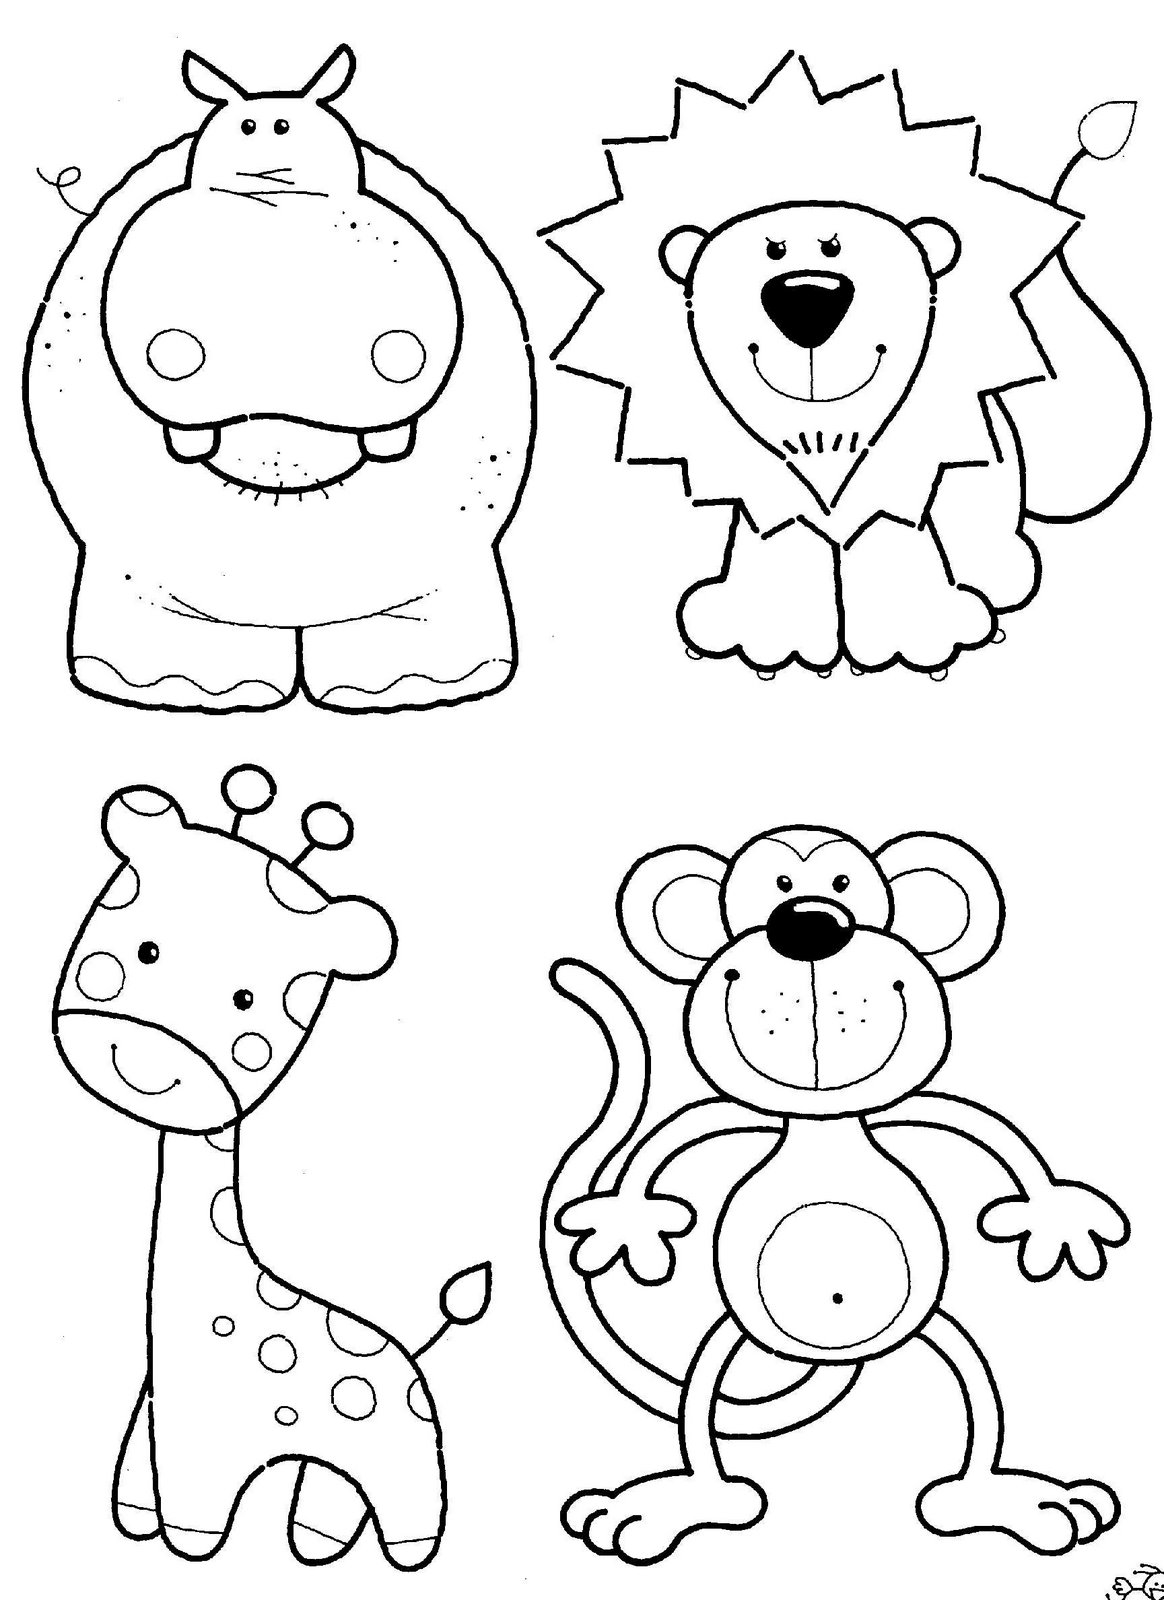 www coloring pages of animals incredible turtle animals coloring pages for adults animals www coloring of pages